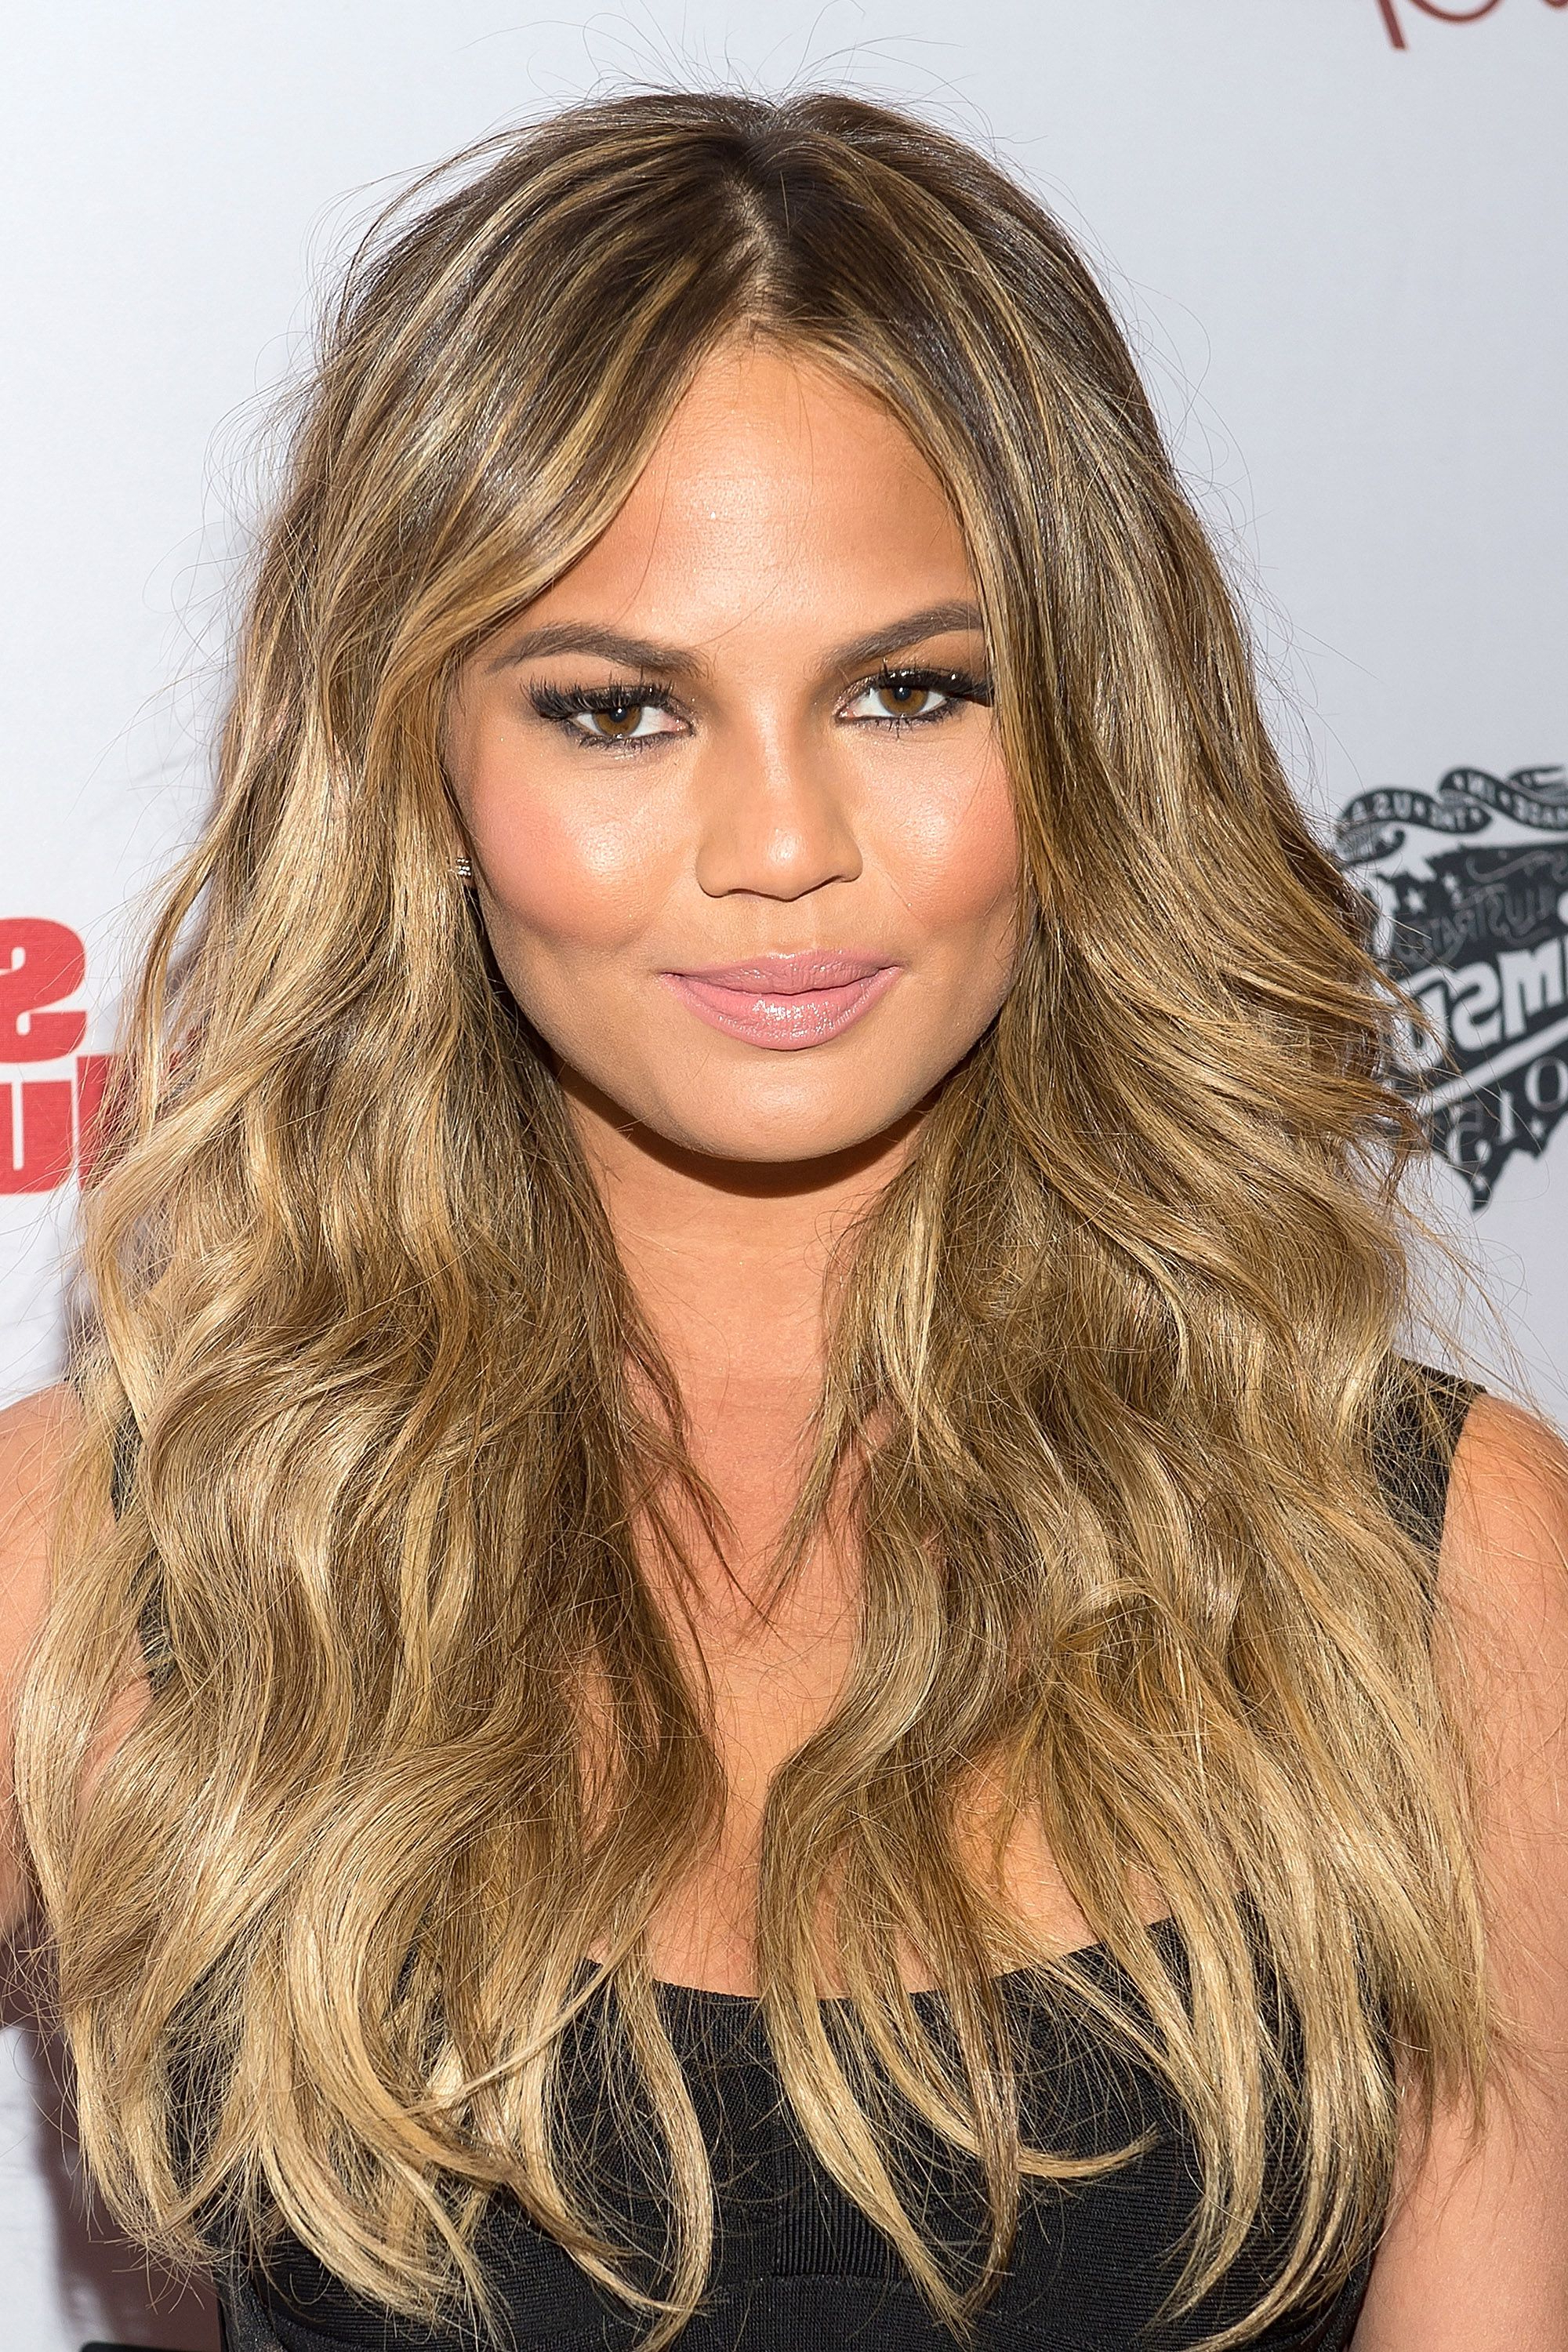 50 Cute Long Layered Hairstyles And Haircut Trends For Women 2019 Pertaining To 2019 Long Layered Waves Hairstyles (View 9 of 20)